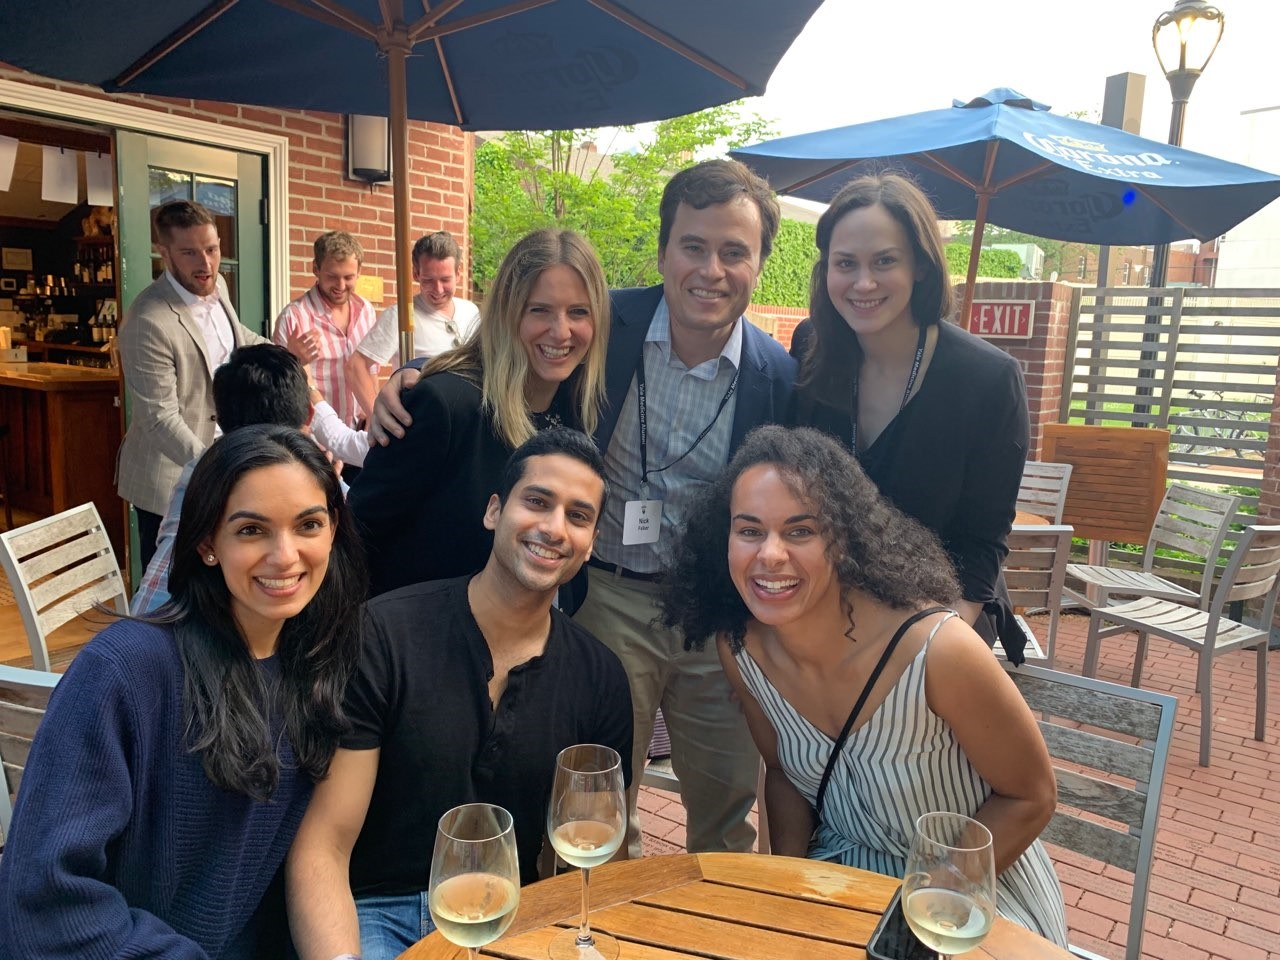 5th Reunion Gathering at Mory's, June 1, 2019